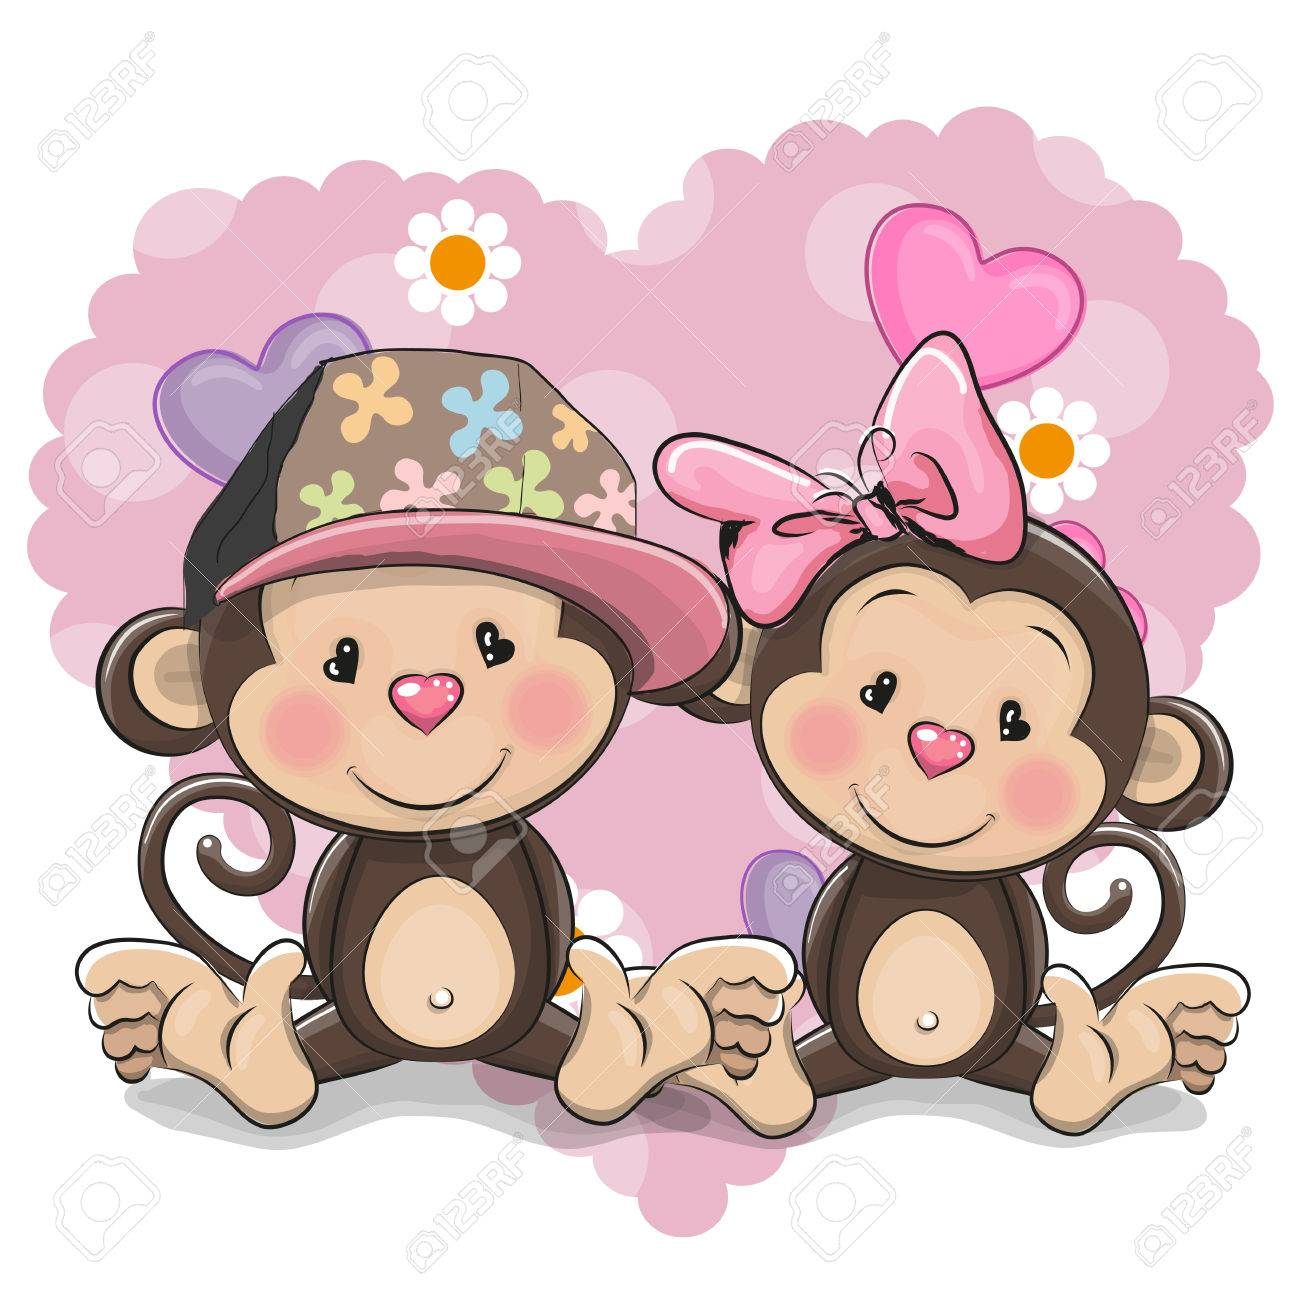 two cute cartoon monkeys on a heart background royalty free cliparts